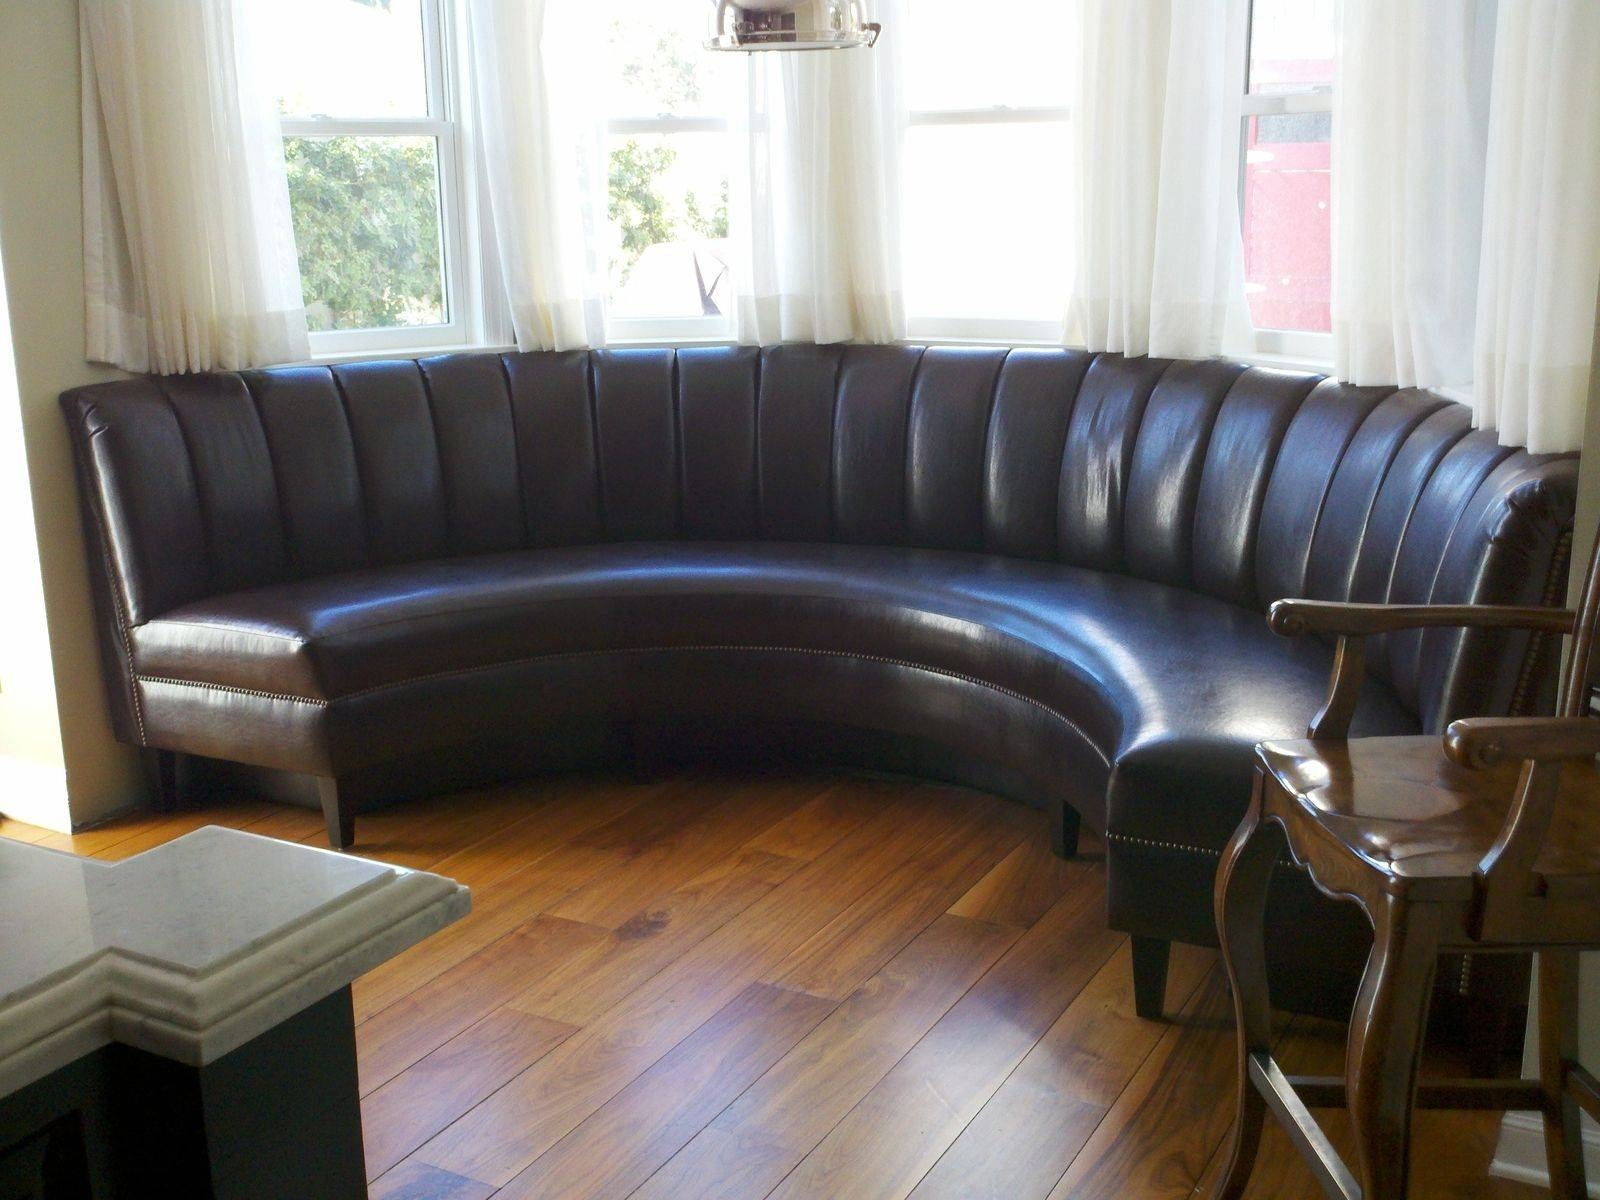 Custom Sofas | Sectional And Leather Couches | Custommade pertaining to Custom Made Sectional Sofas (Image 9 of 30)